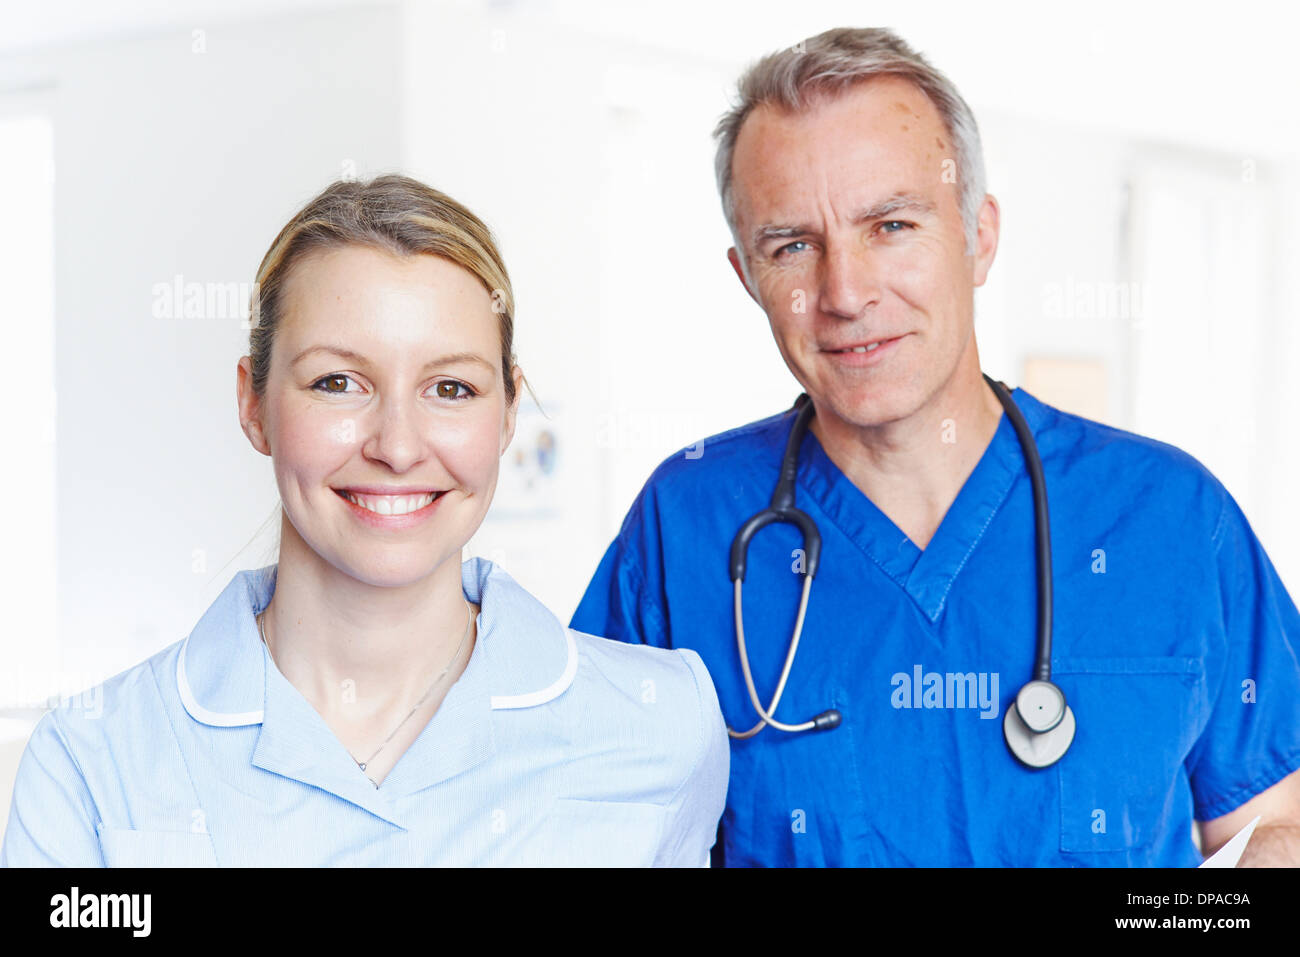 Portrait of doctor and nurse looking at camera - Stock Image